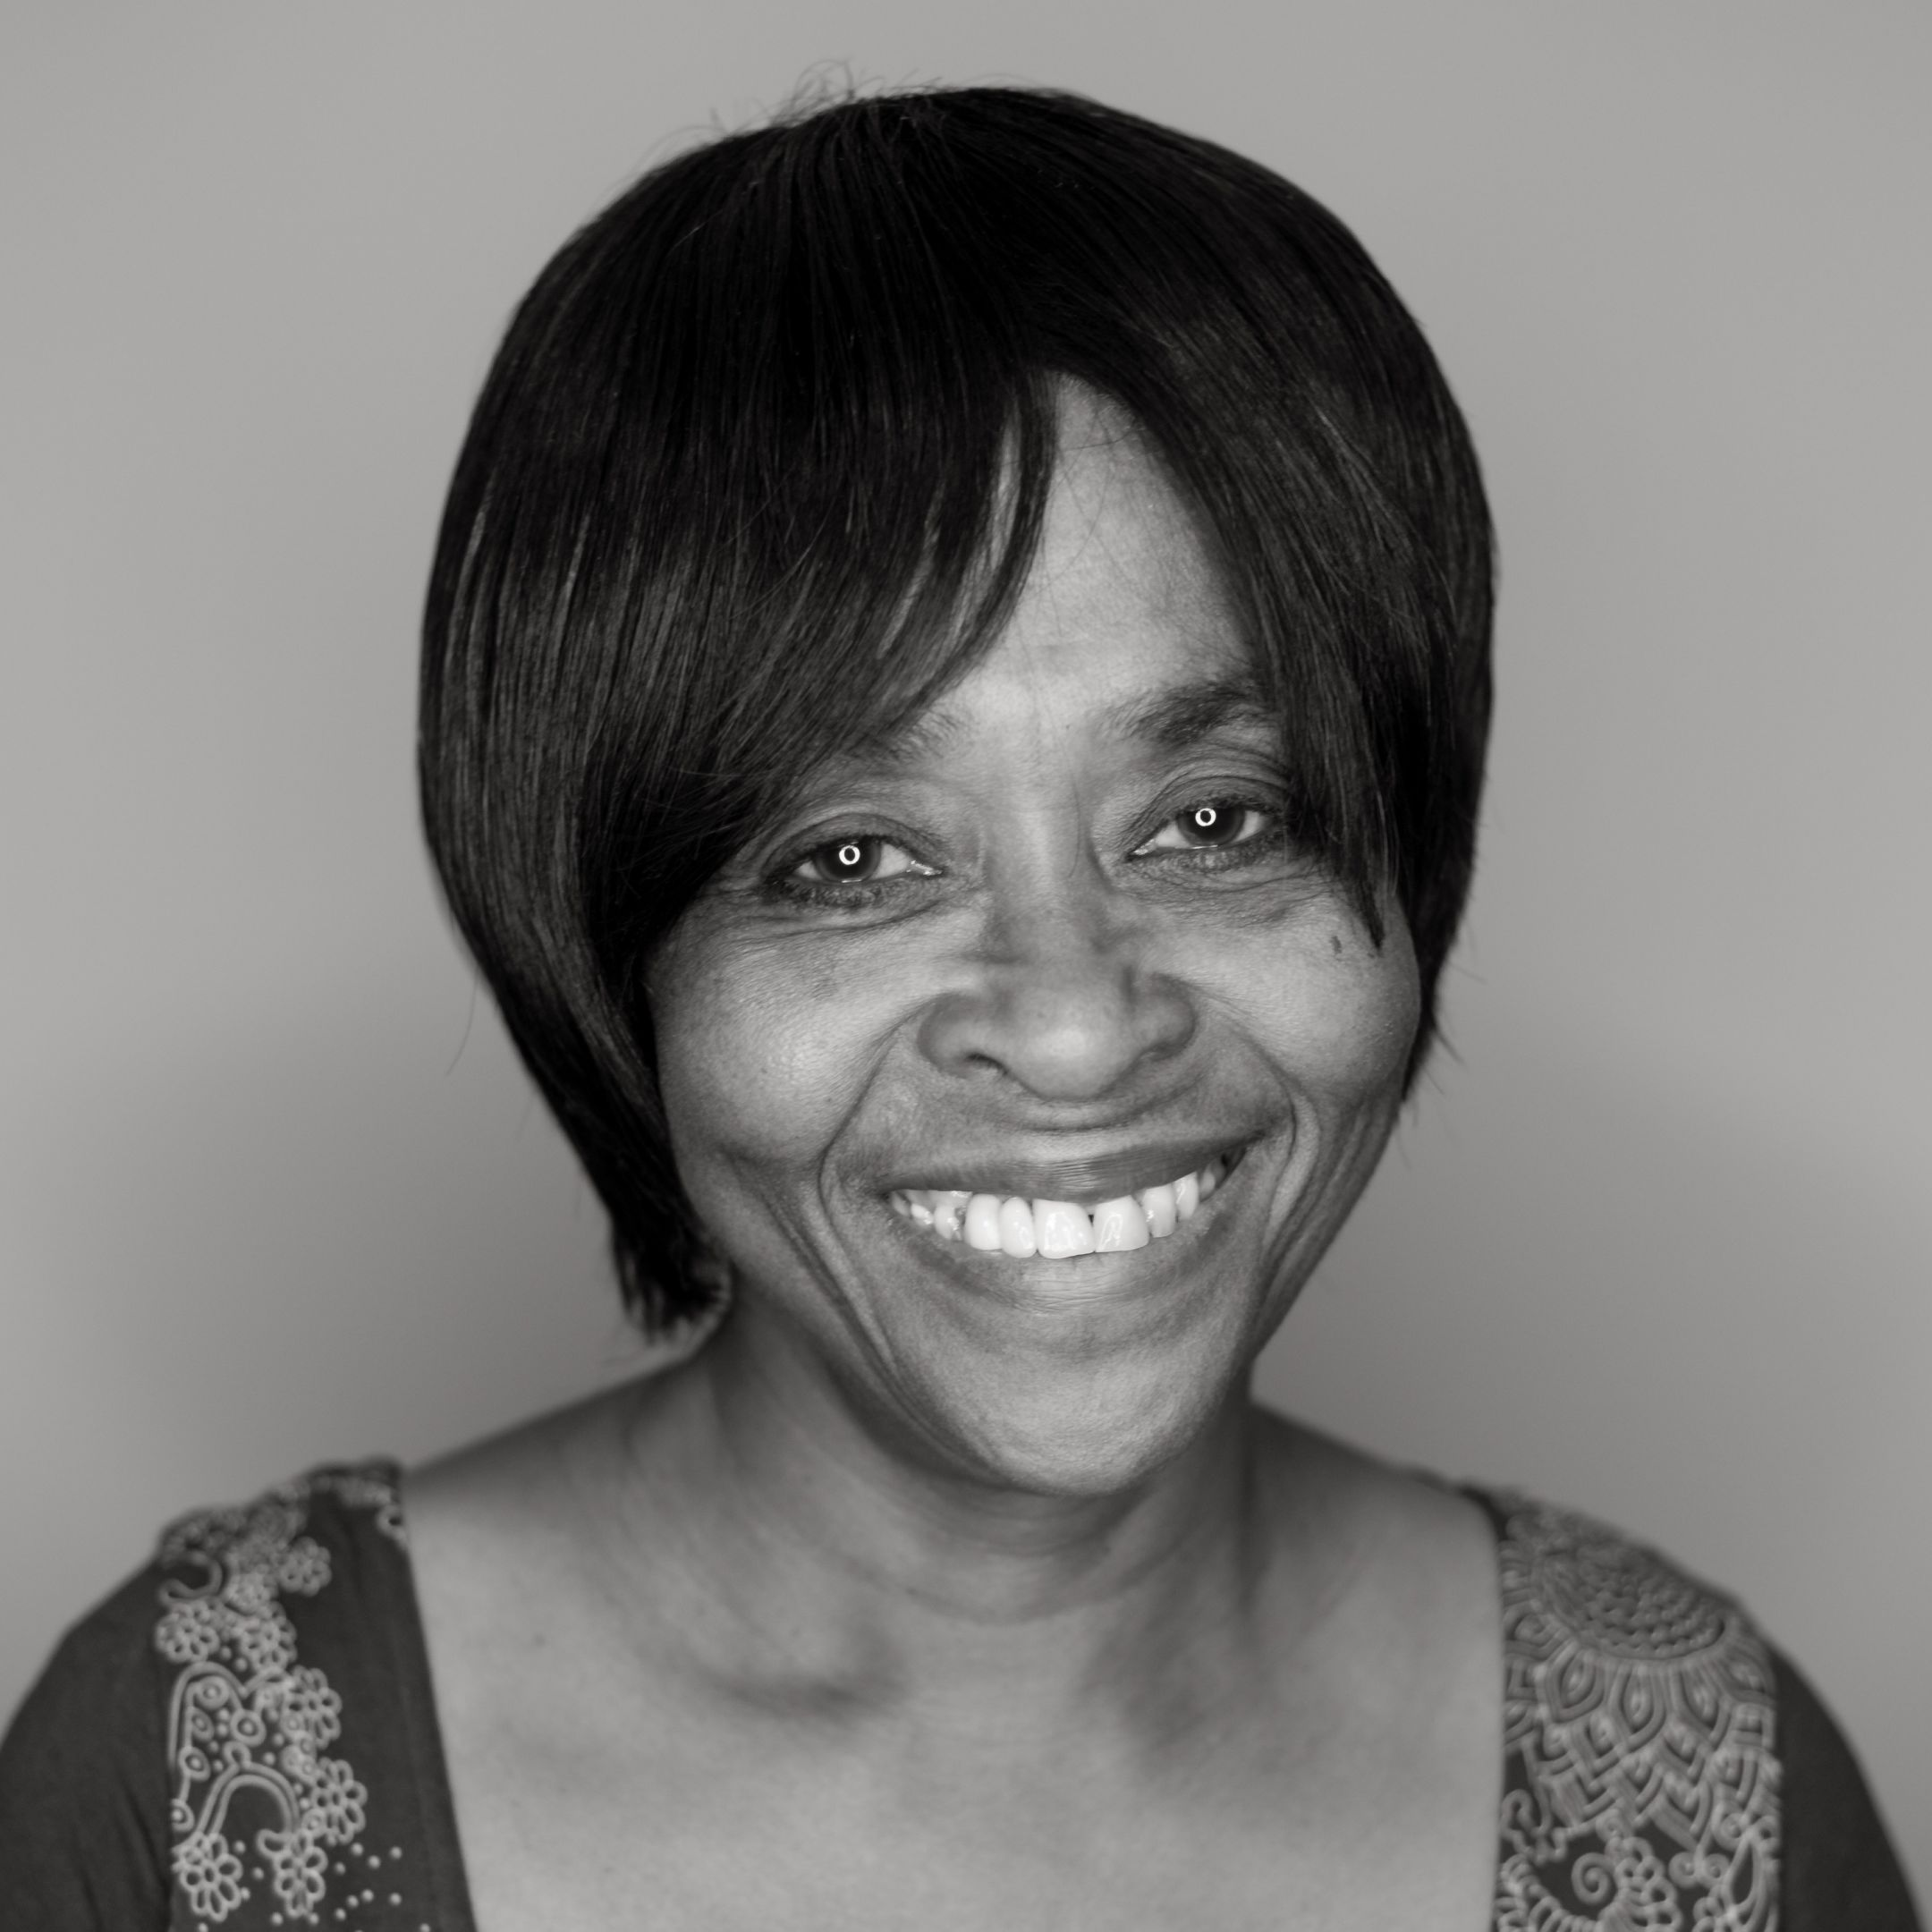 A photo of the author Valerie Bloom